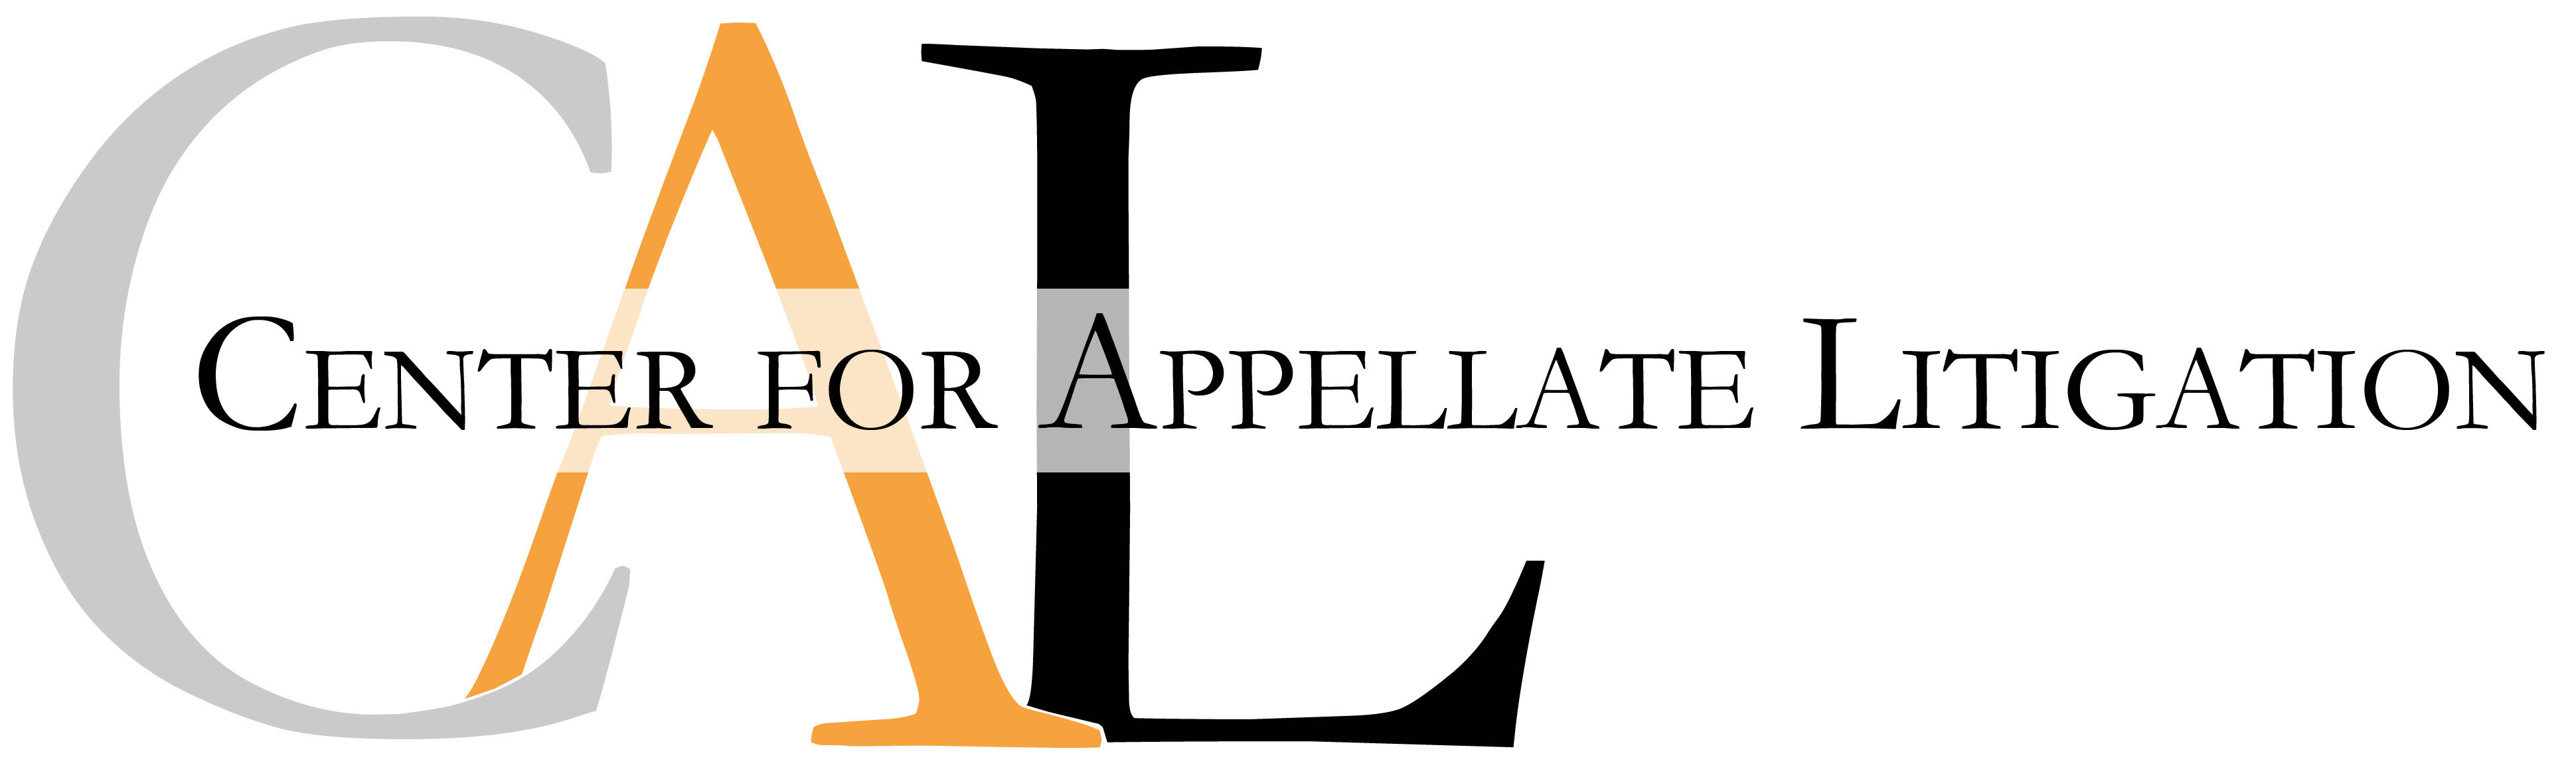 Center For Appellate Litigation